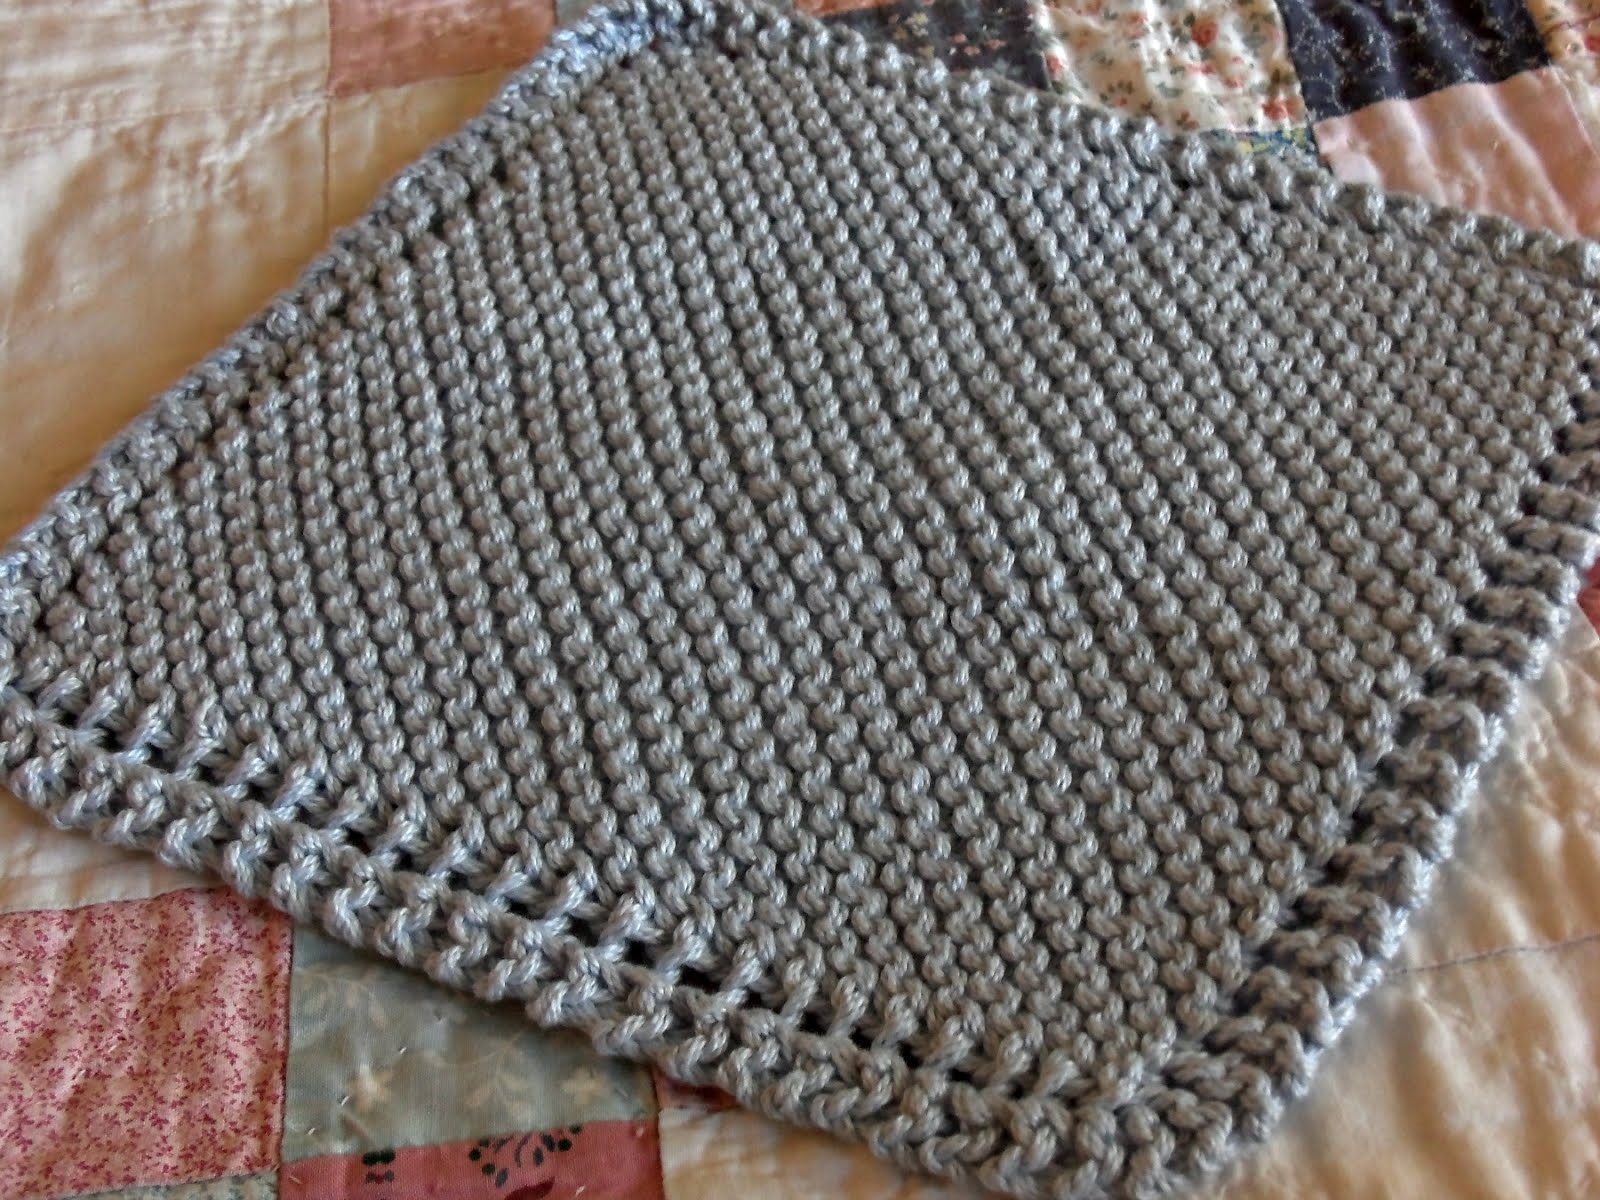 Knitted Cloth Patterns : golden bird knits: Wash Cloths on Parade